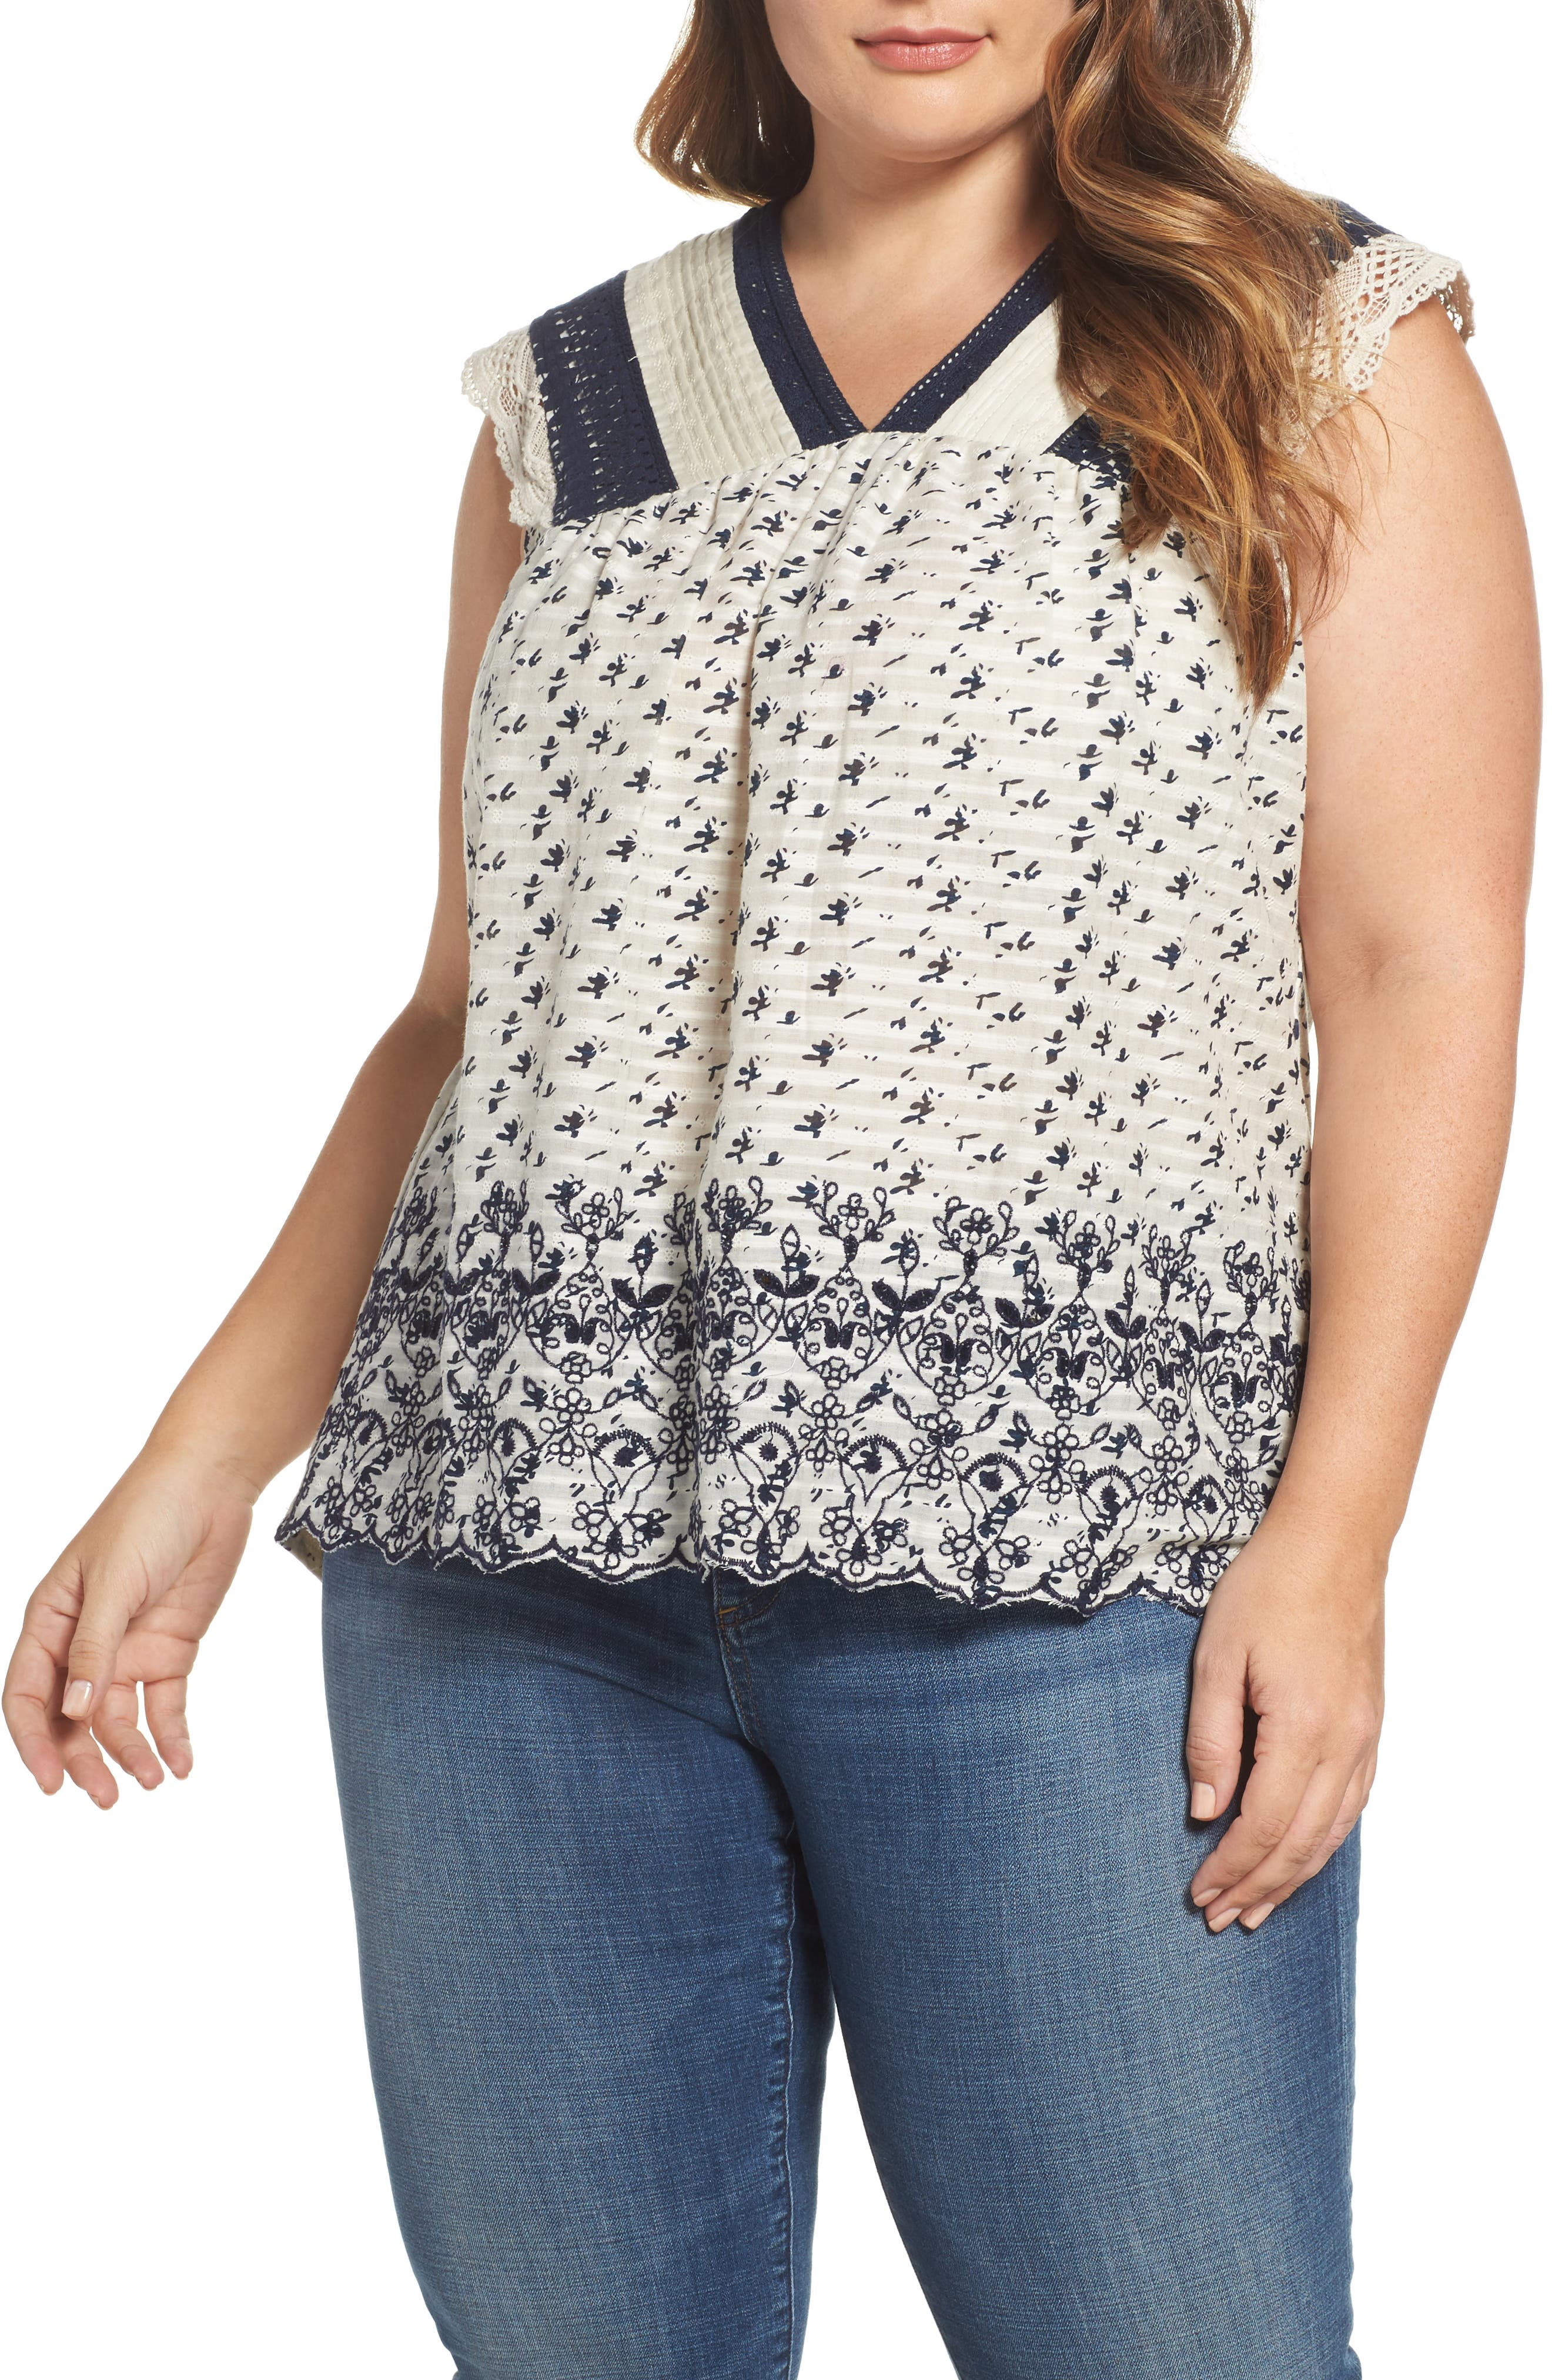 Main Image - Lucky Brand Embroidered Print Flutter Top (Plus Size)